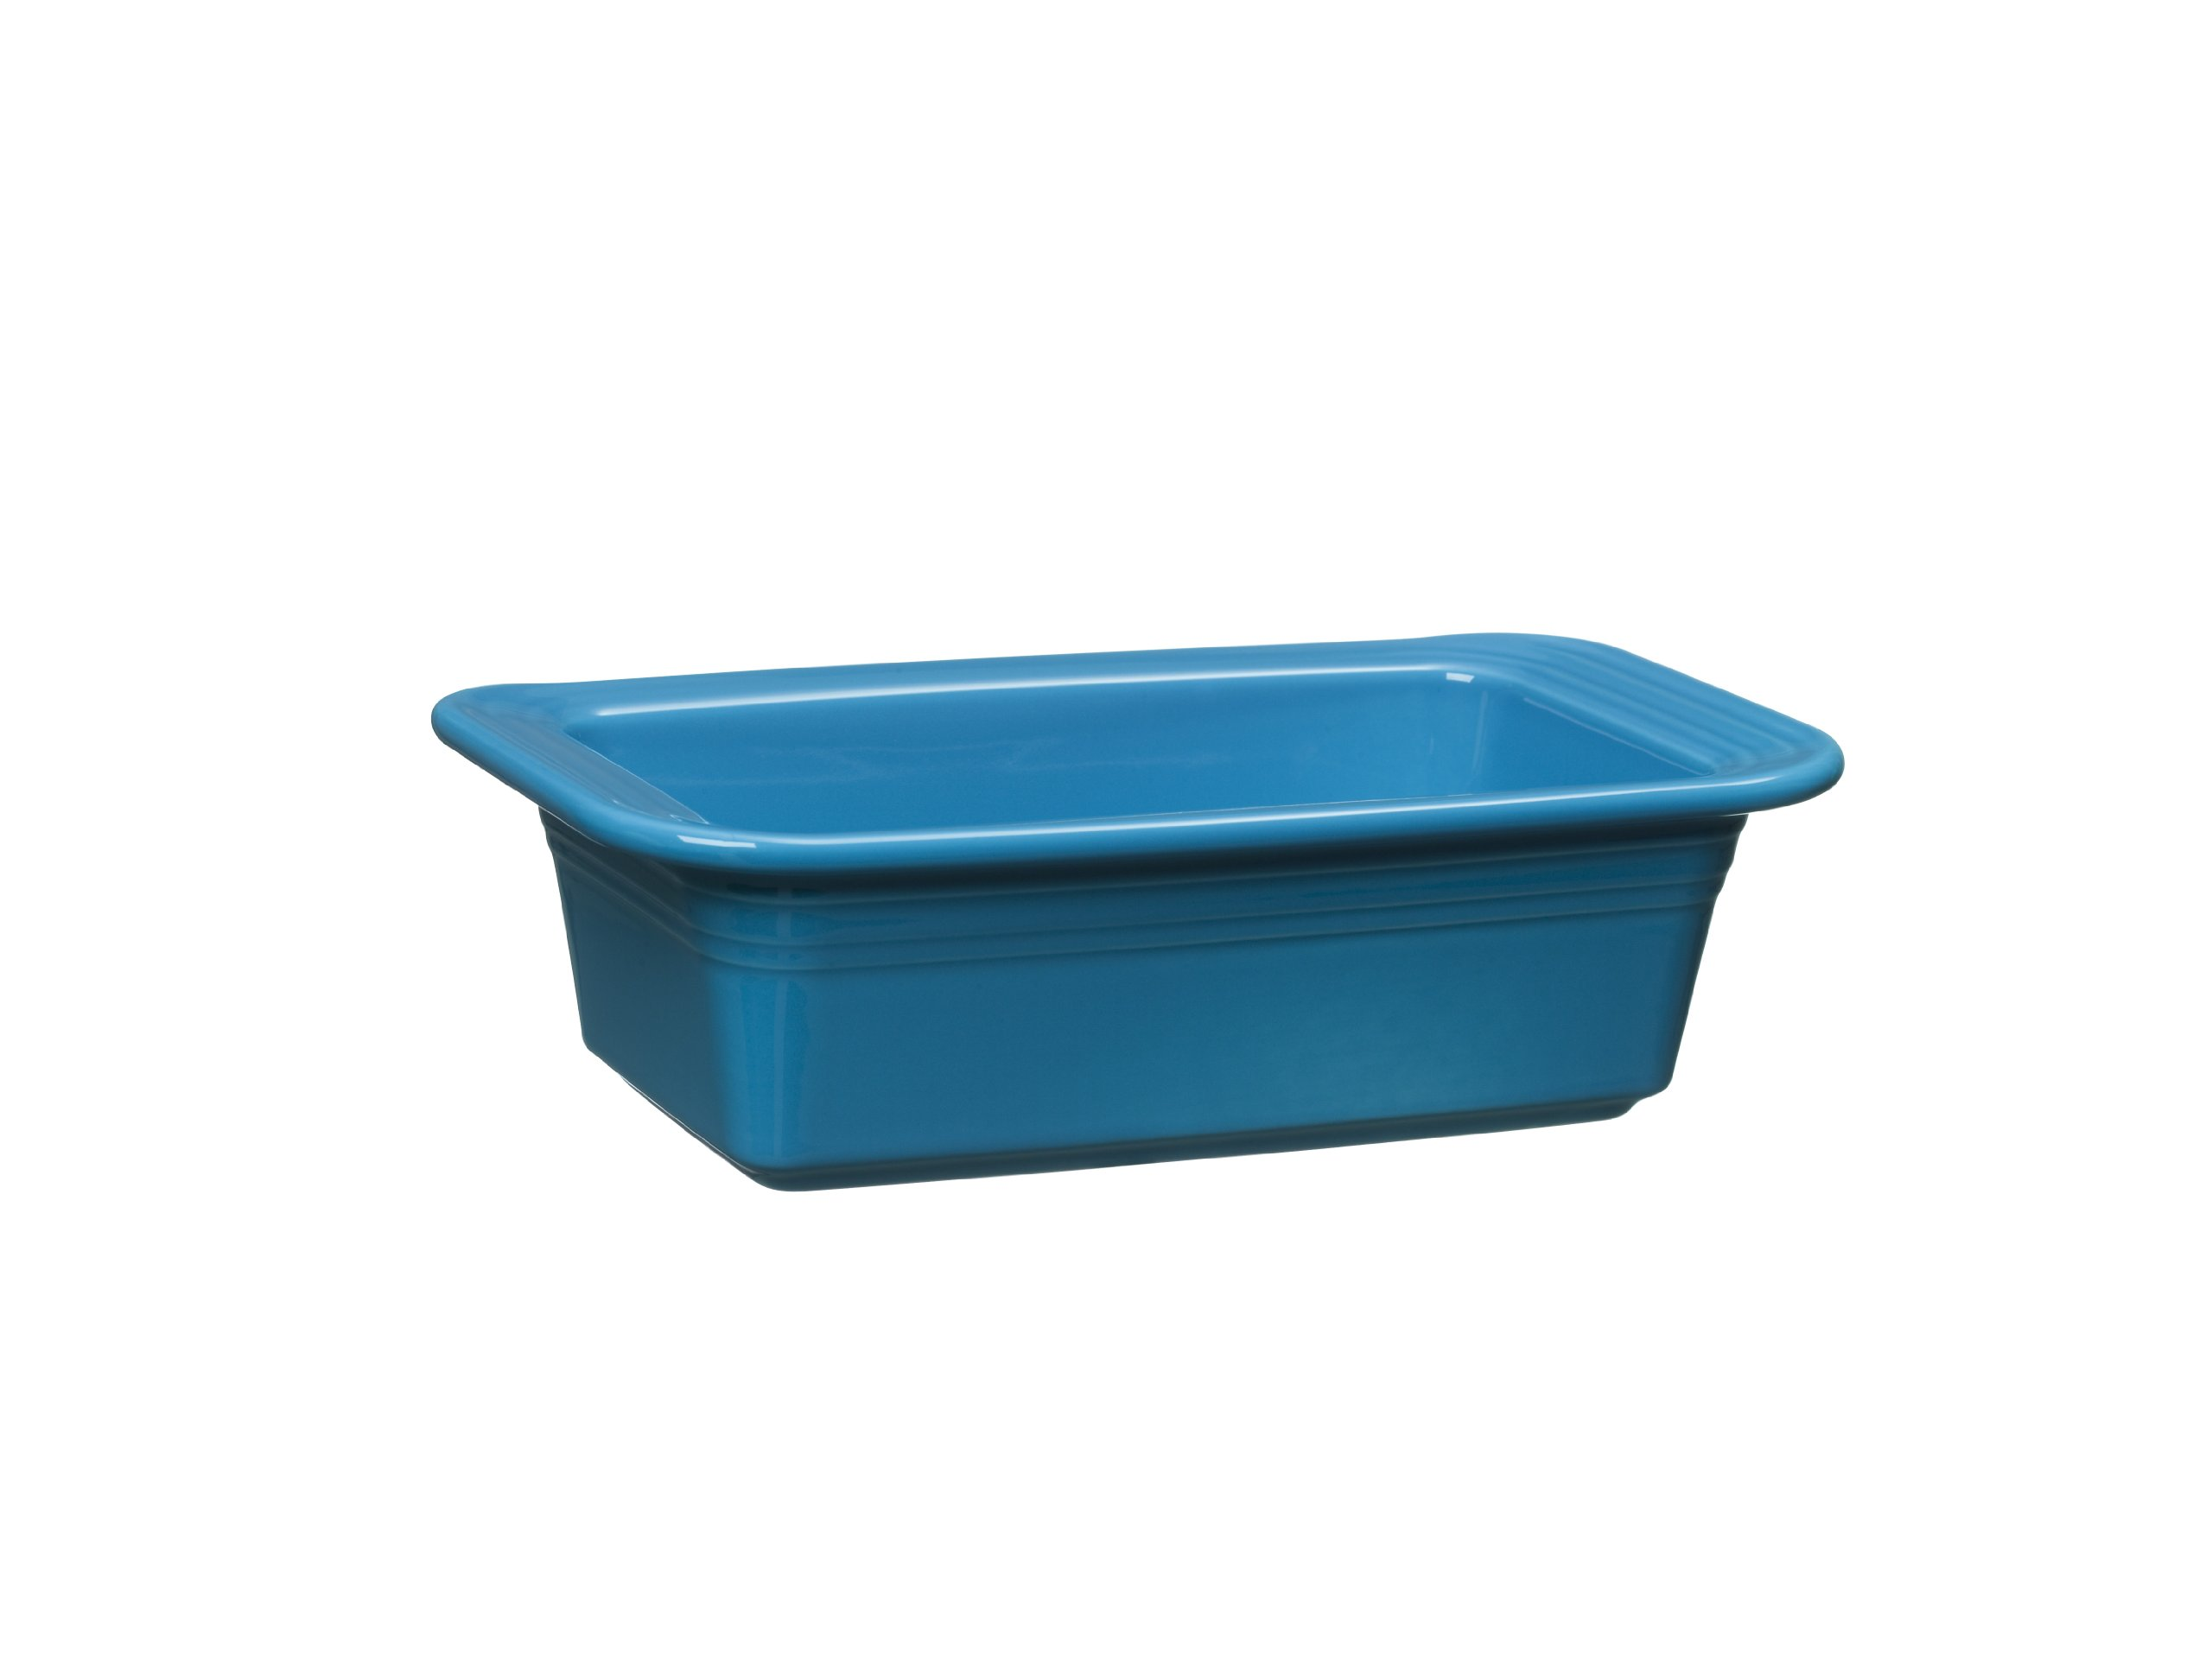 Fiesta 813-327 Loaf Pan, 5-3/4-Inch by 10-3/4-Inch, Peacock